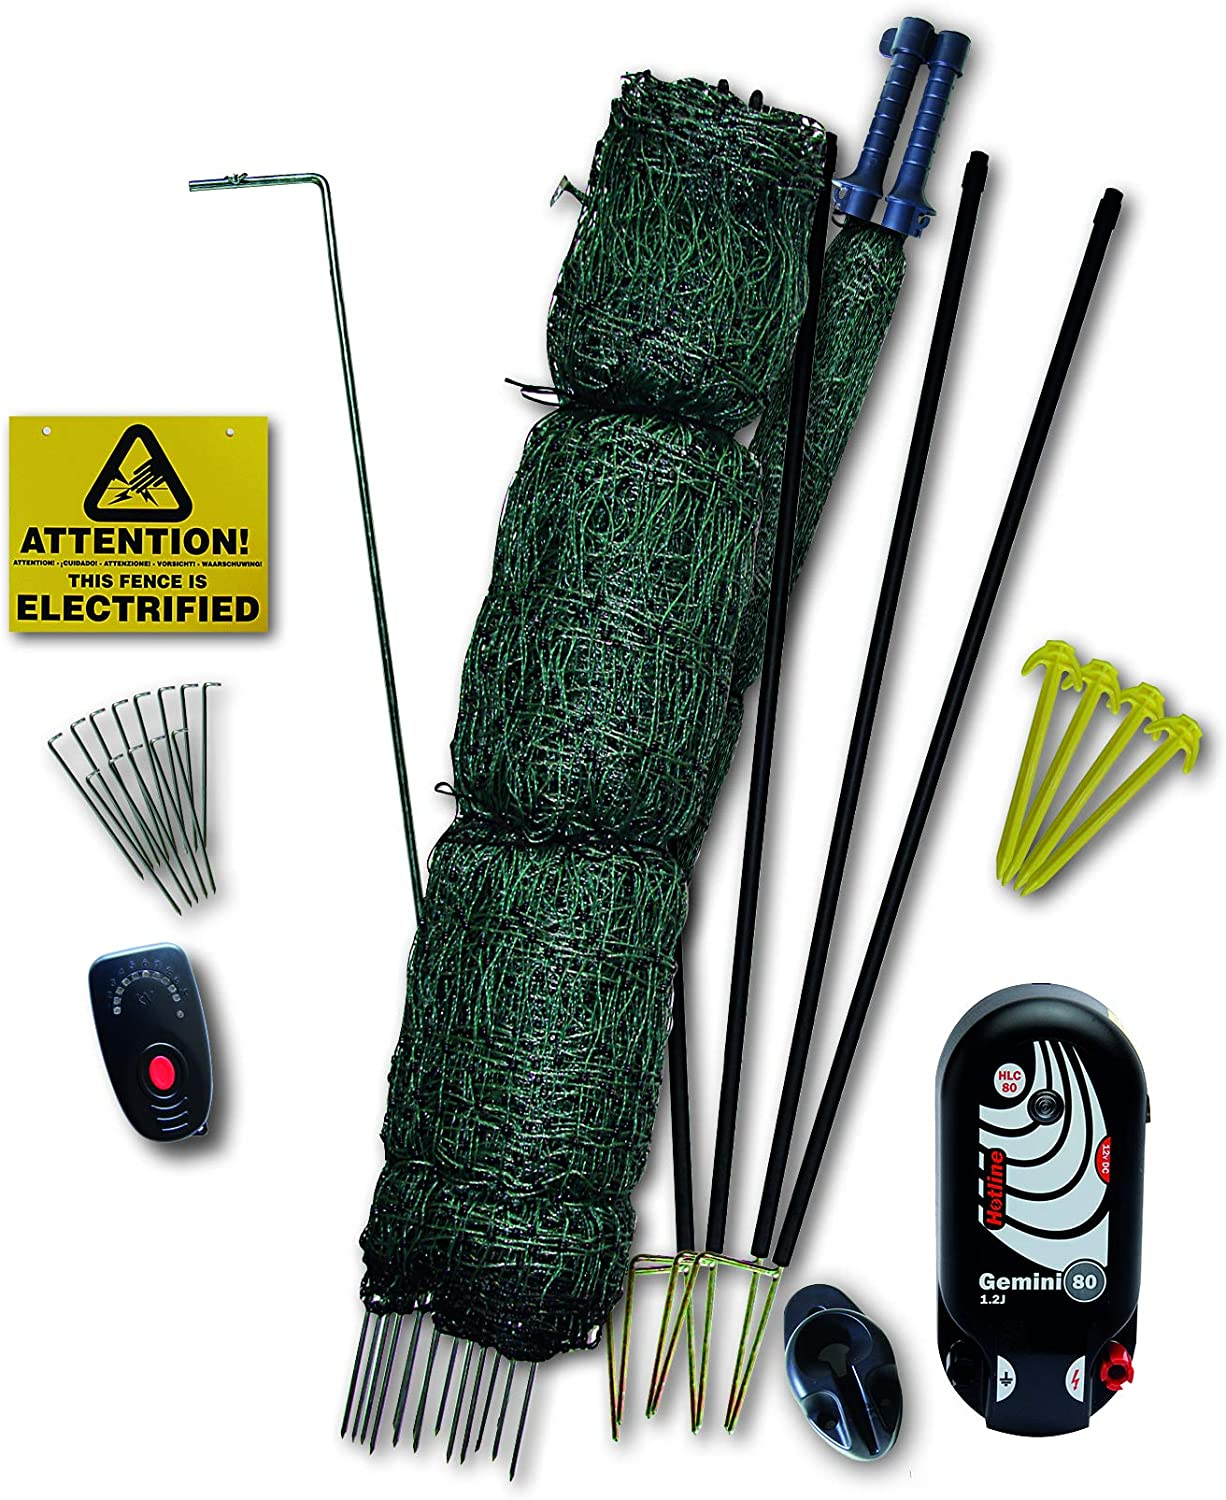 Hotline 50 METER x 1.22 METER HIGH PREMIUM FOX BUSTING POULTRY NETTING KIT  WITH CLOSE MESH (battery or mains powered)